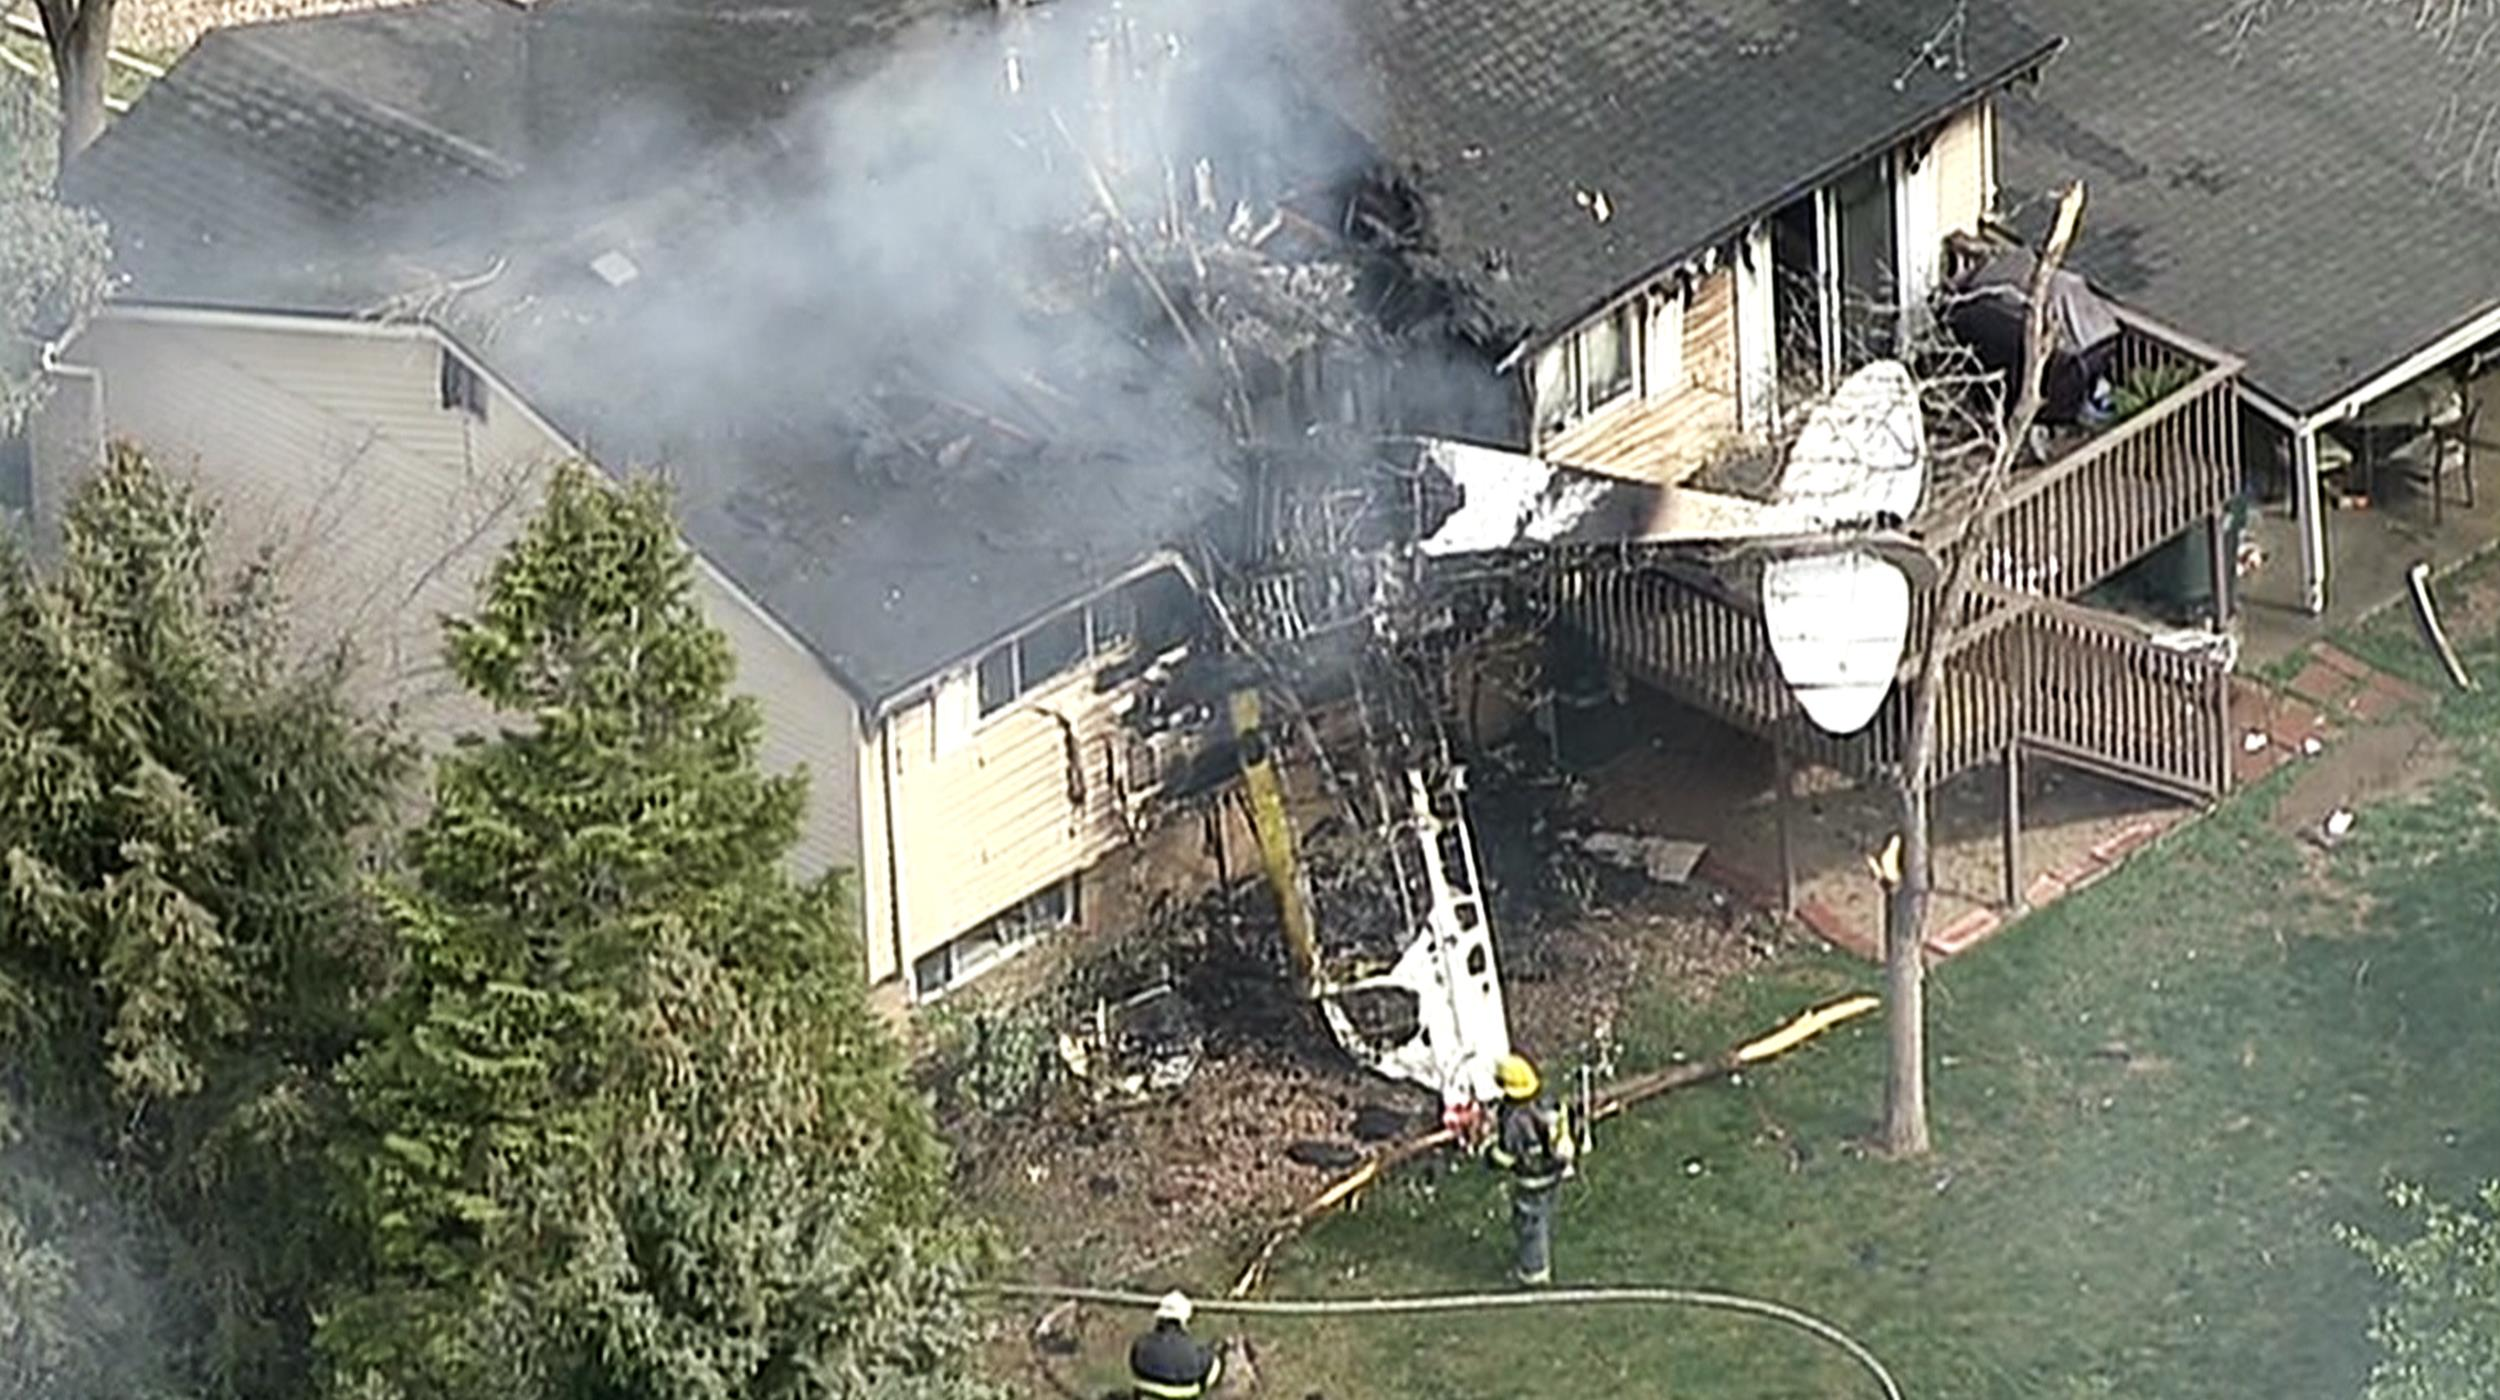 Image: A plane crashed into a house in Northglenn, Colo., Monday afternoon. Northglenn is a suburb of Dnever.